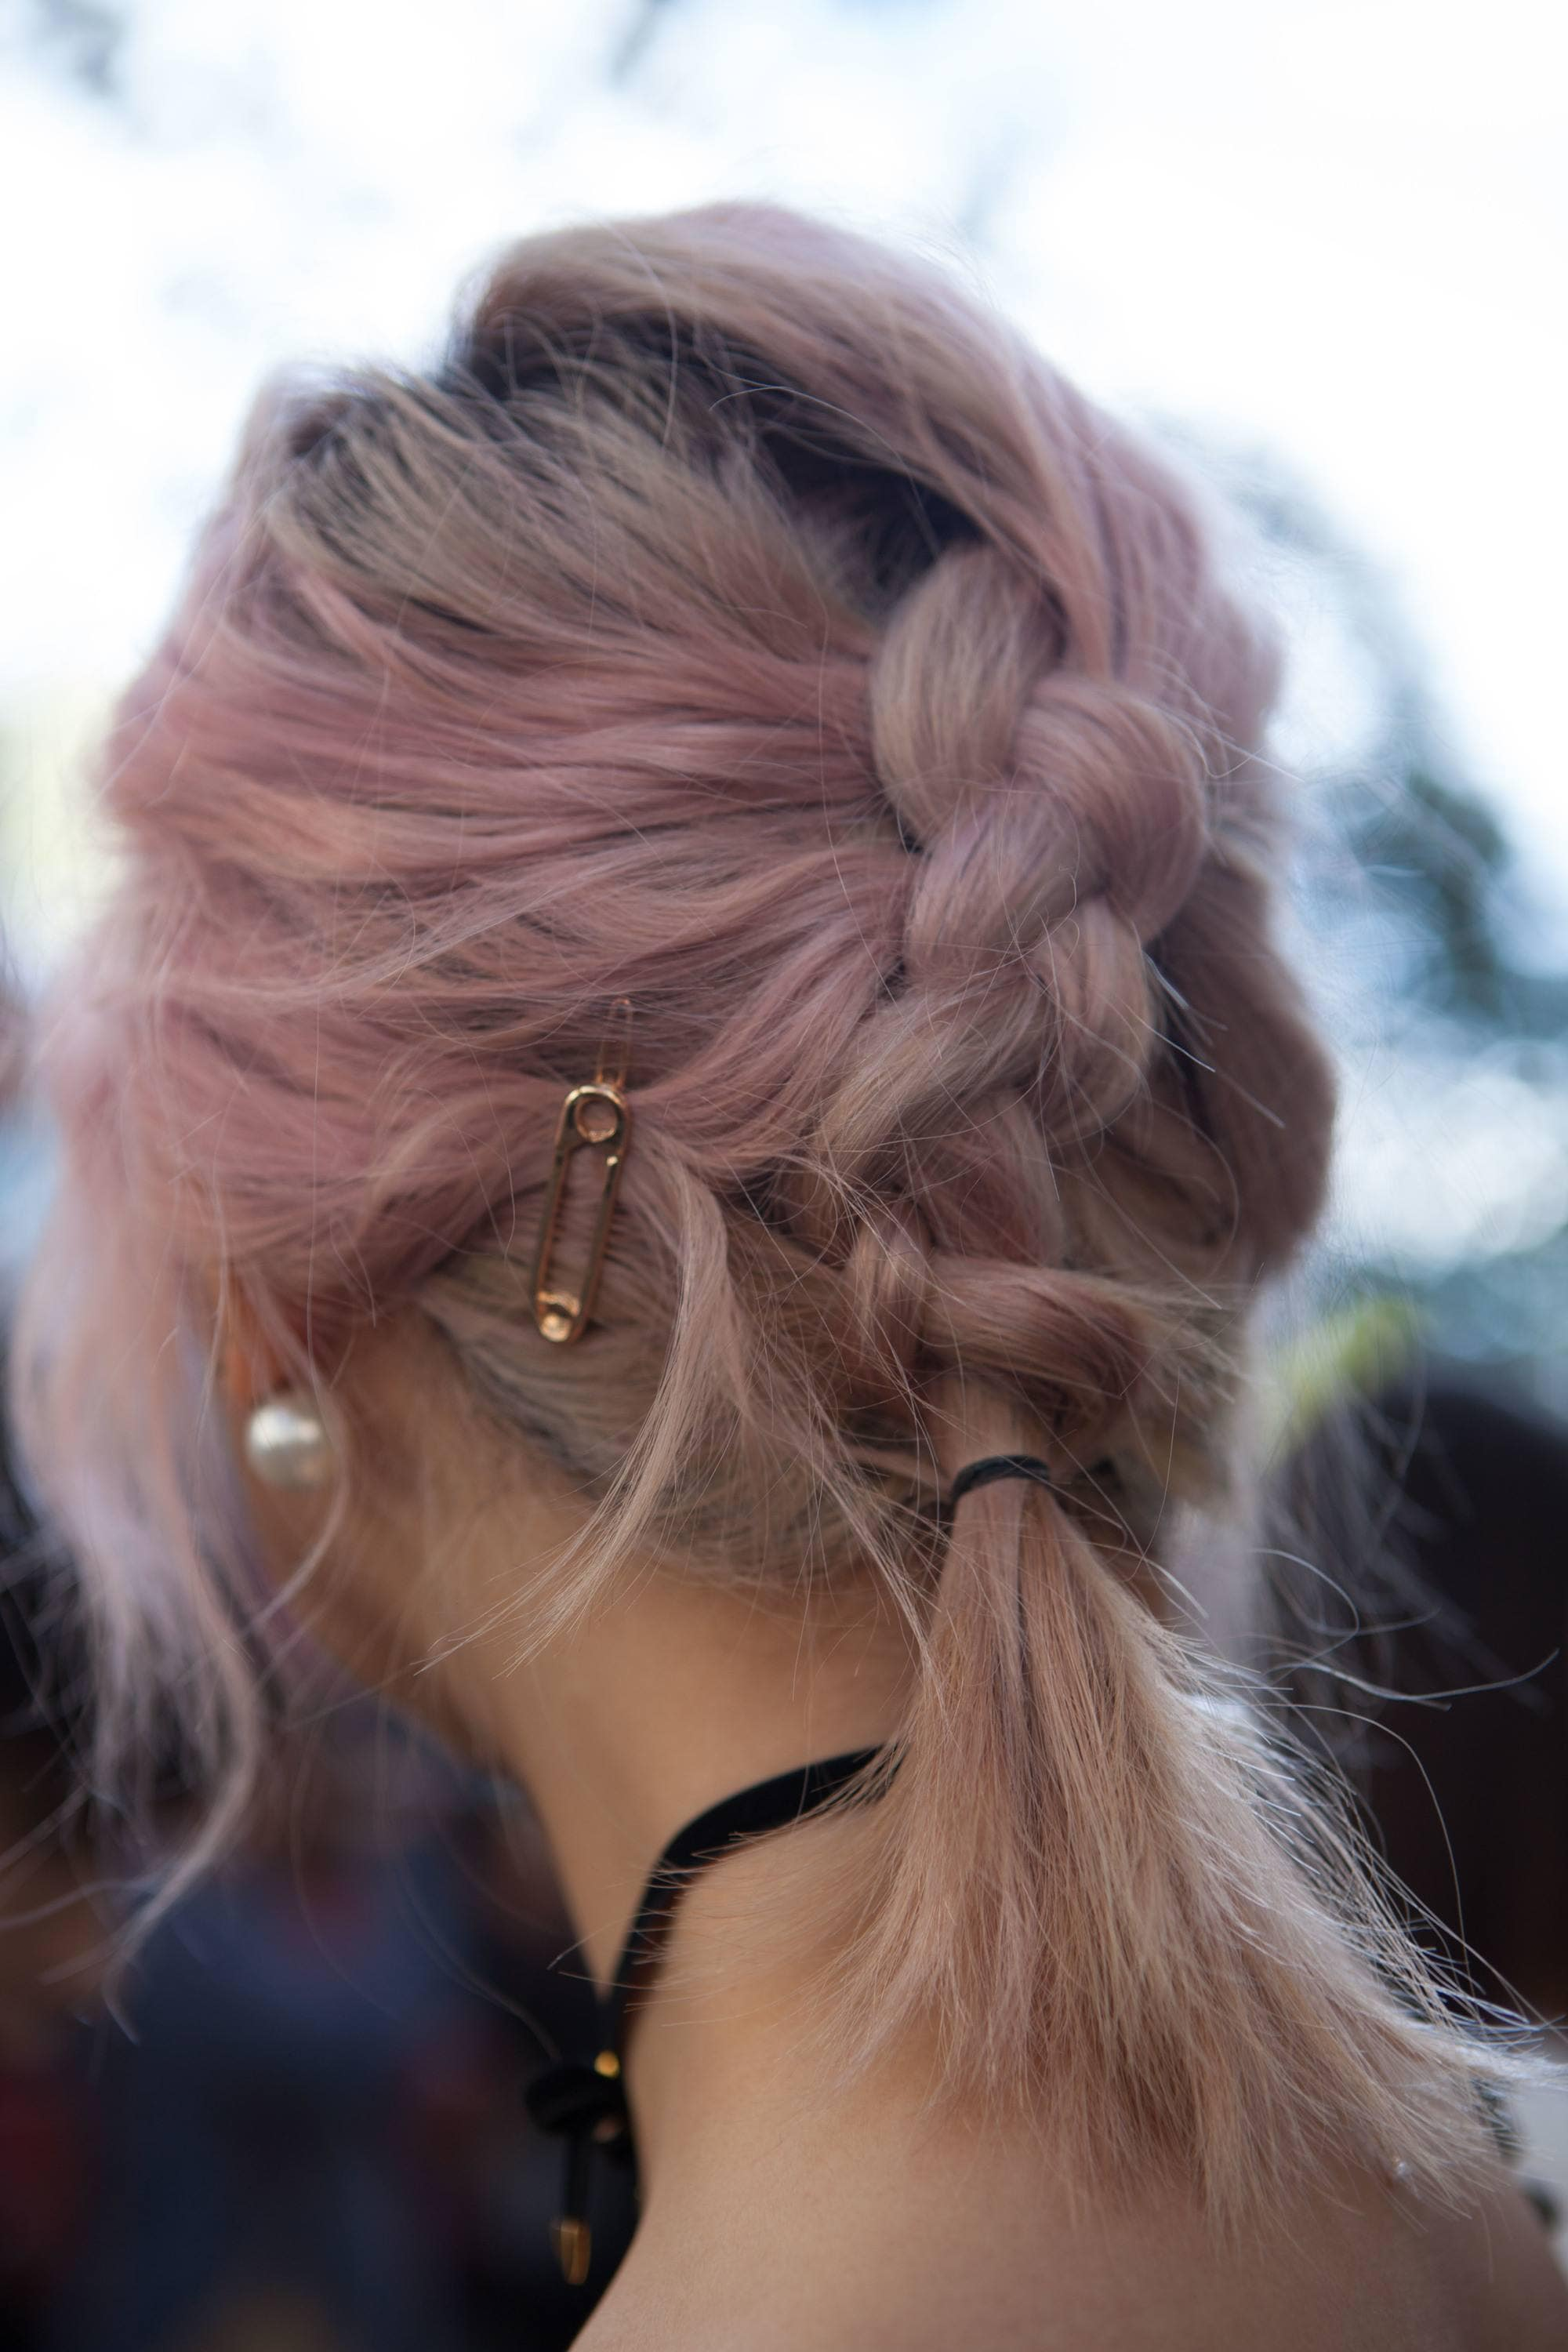 Woman with dark pink short hair styled into Dutch braid